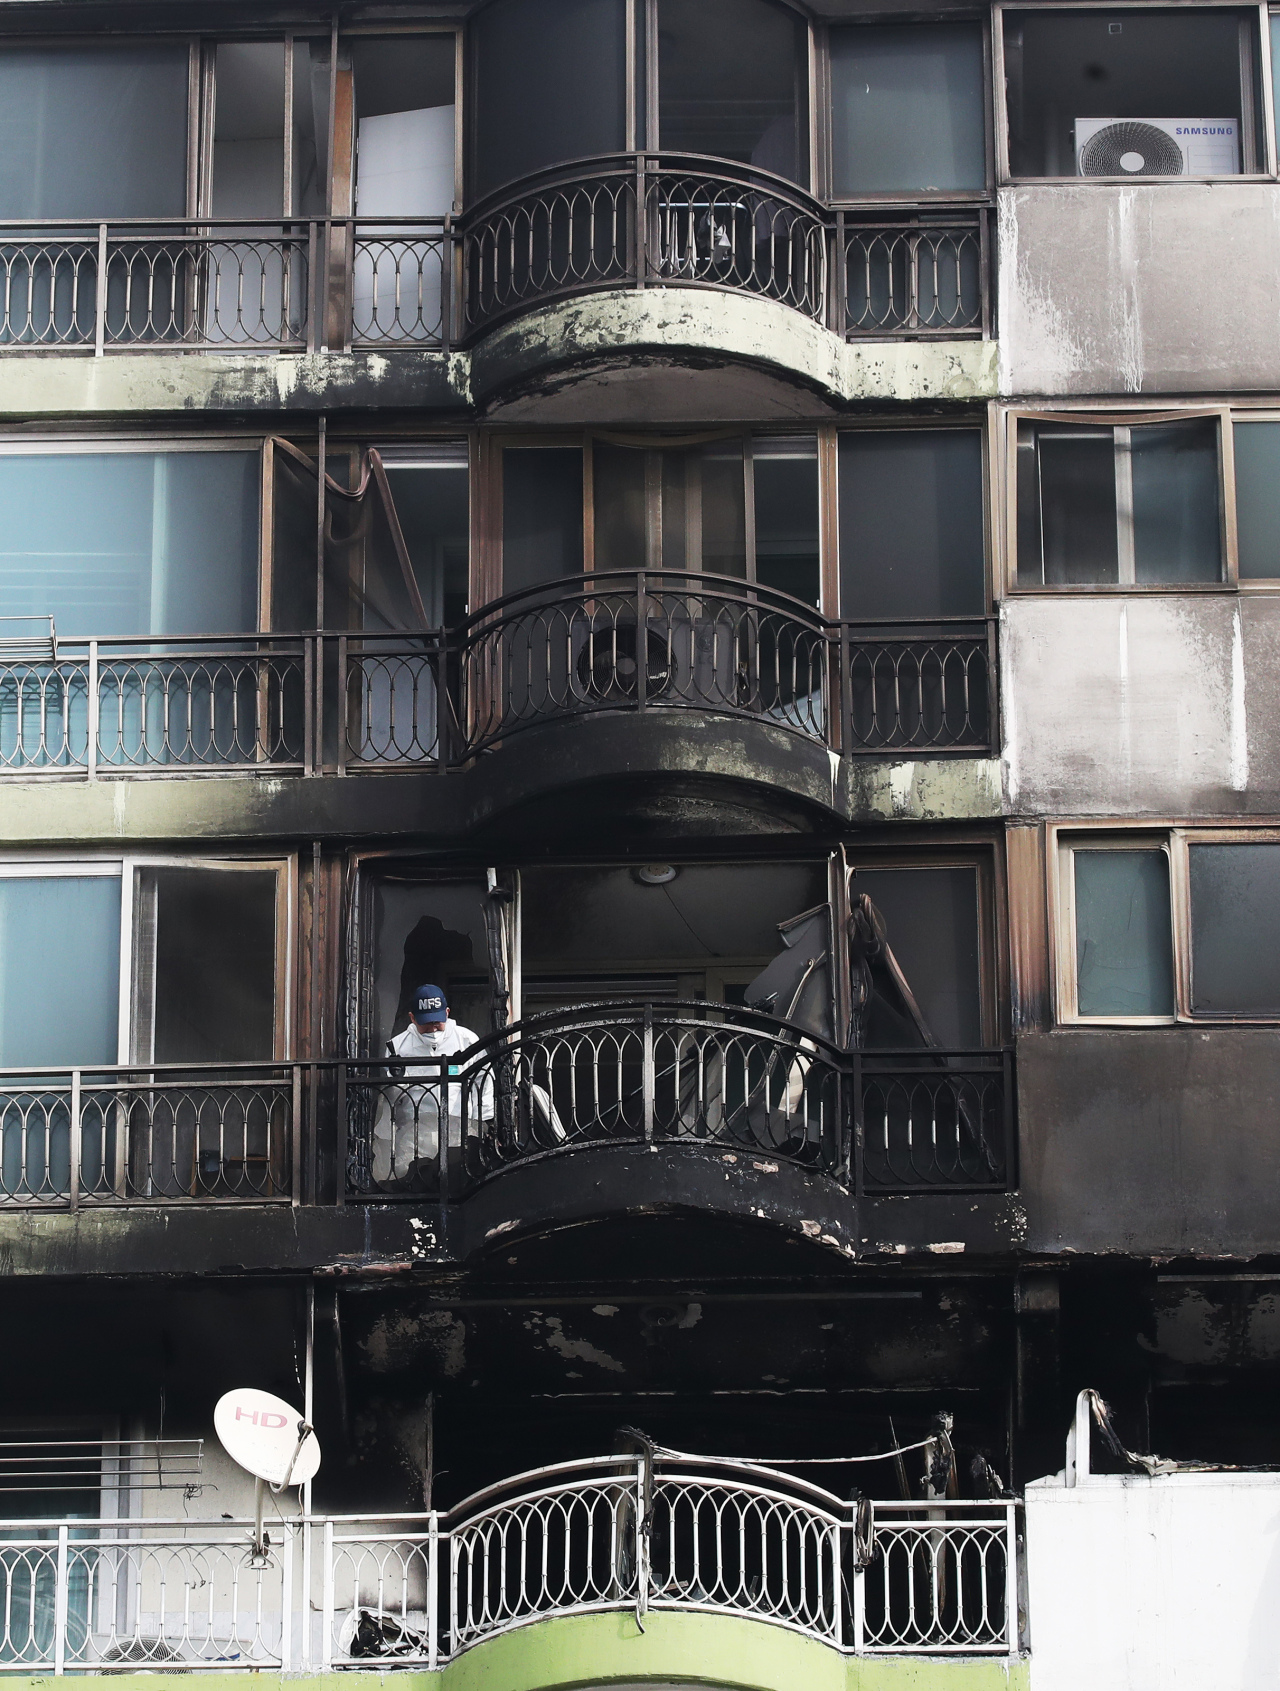 Forensic officials inspect a gutted apartment unit in Gunpo, Gyeonggi Province, on Wednesday. A fire there killed four and injured seven others Tuesday. (Yonhap)